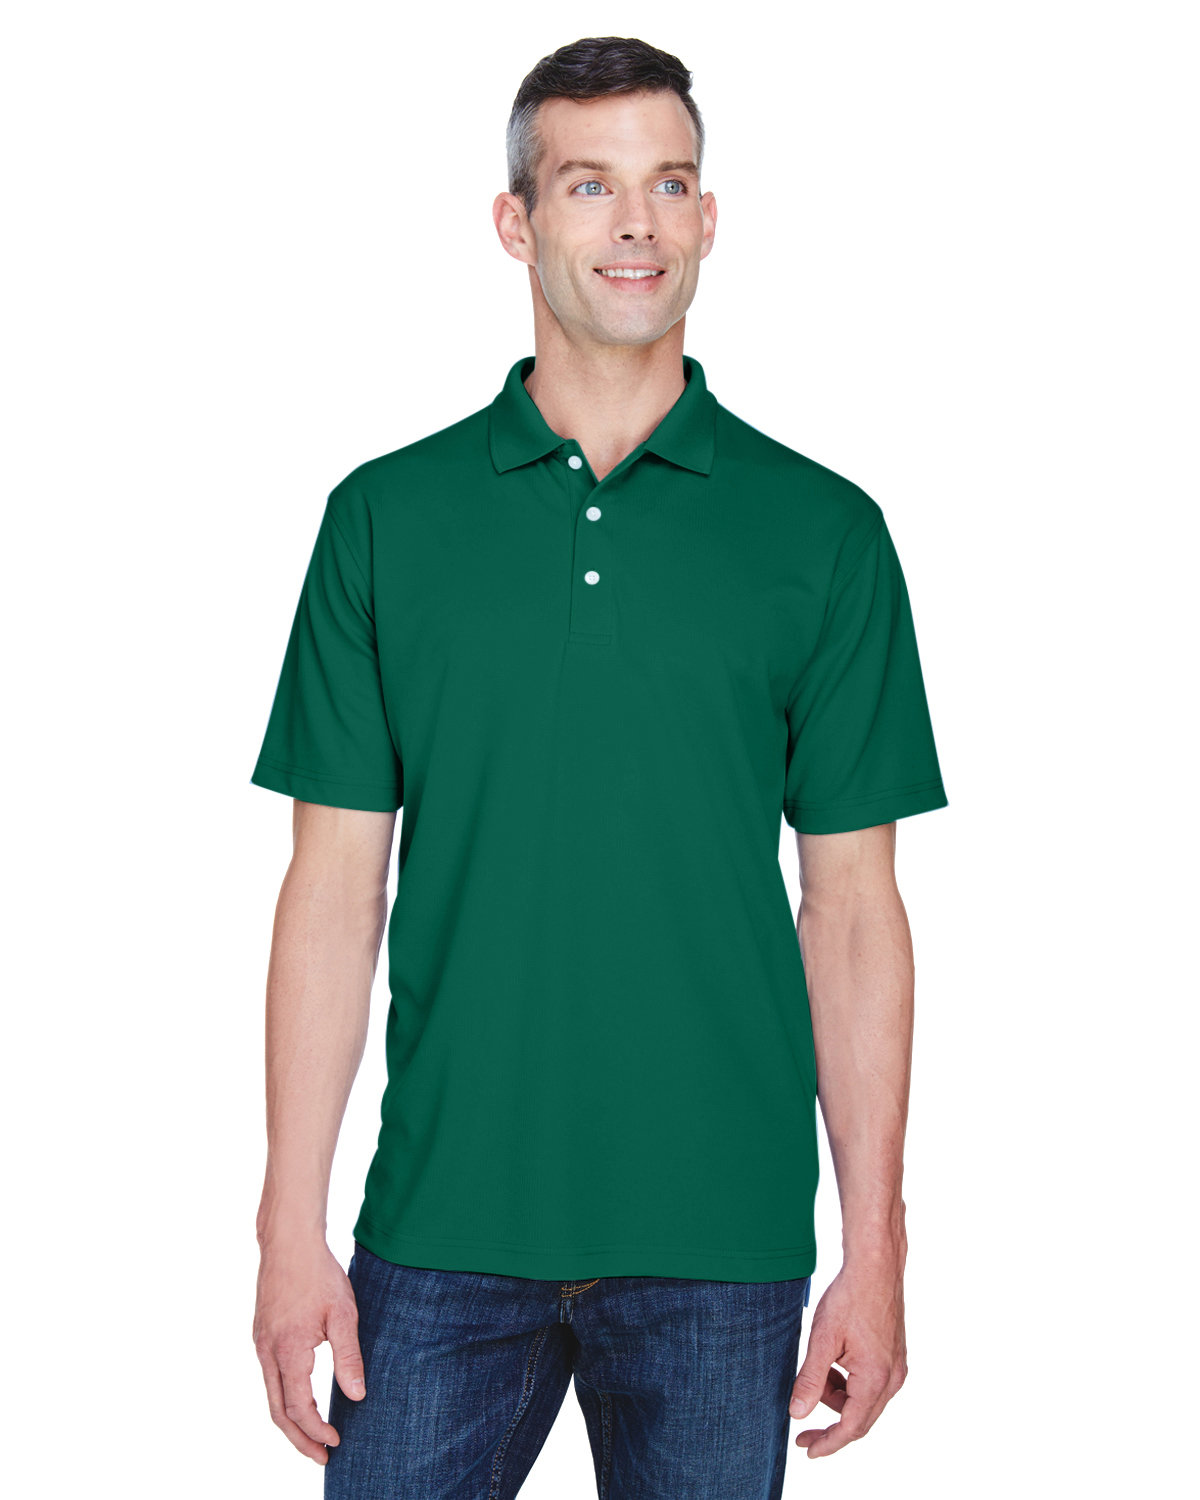 UltraClub Men's Cool & Dry Stain-Release Performance Polo FOREST GREEN